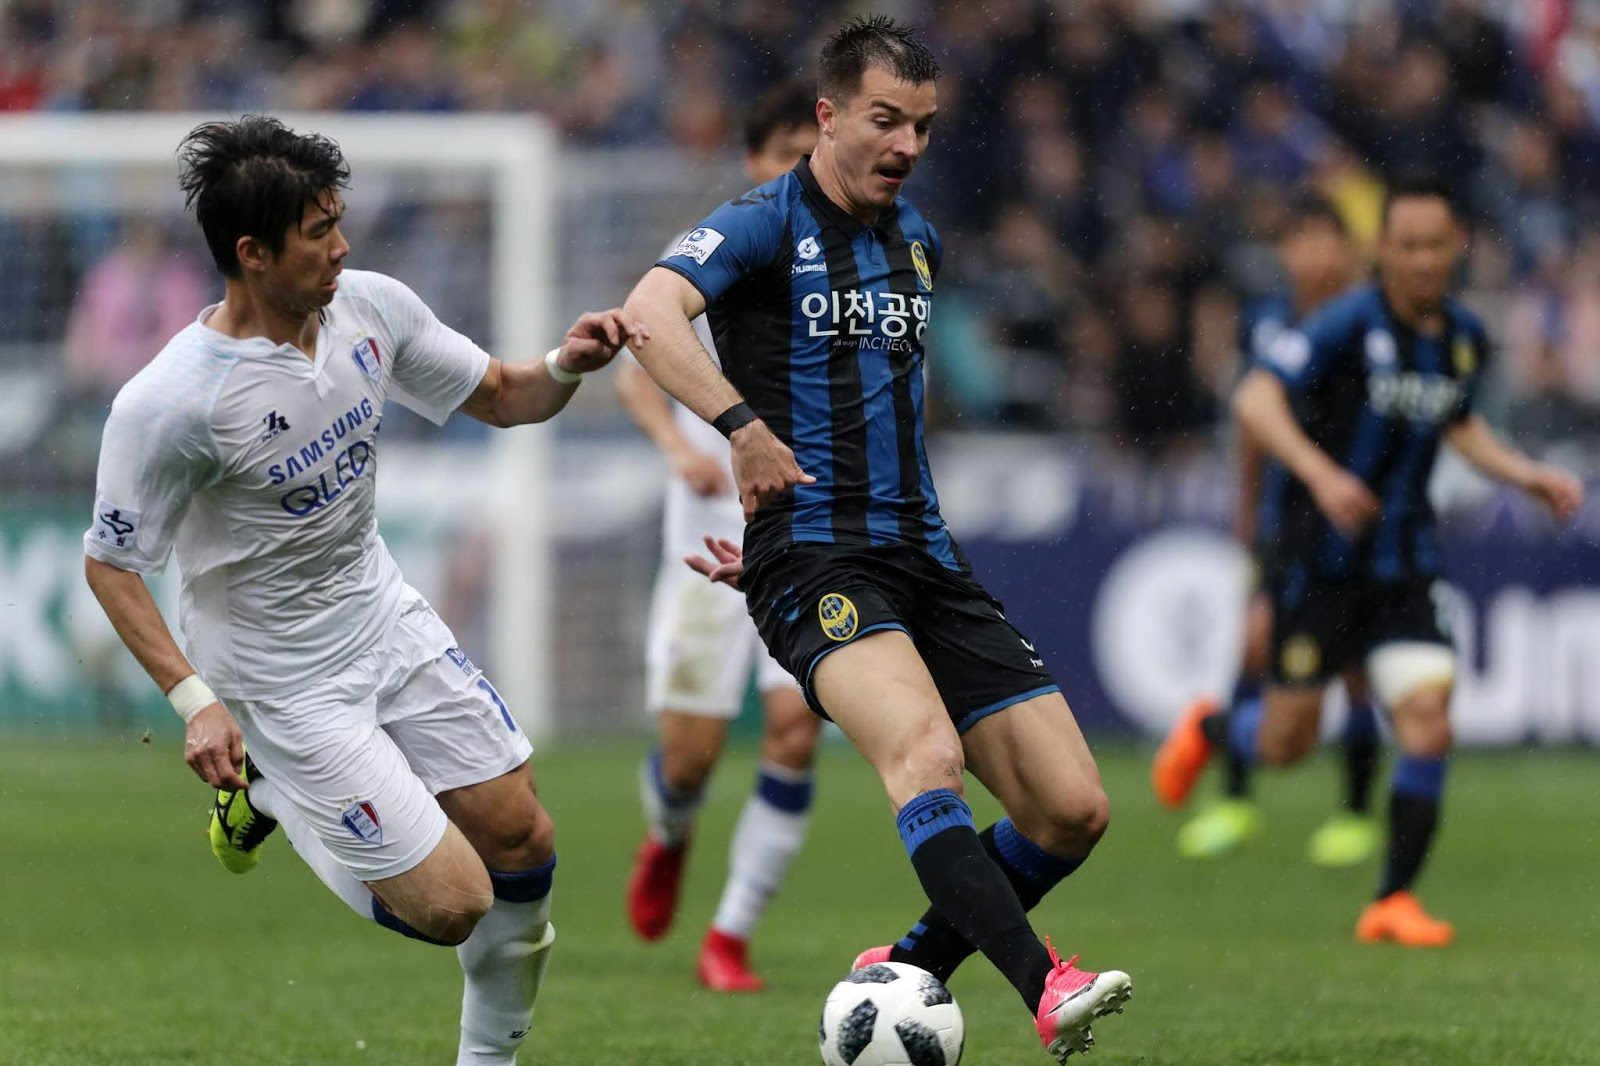 Preview: Incheon United vs Suwon Bluewings K League 1